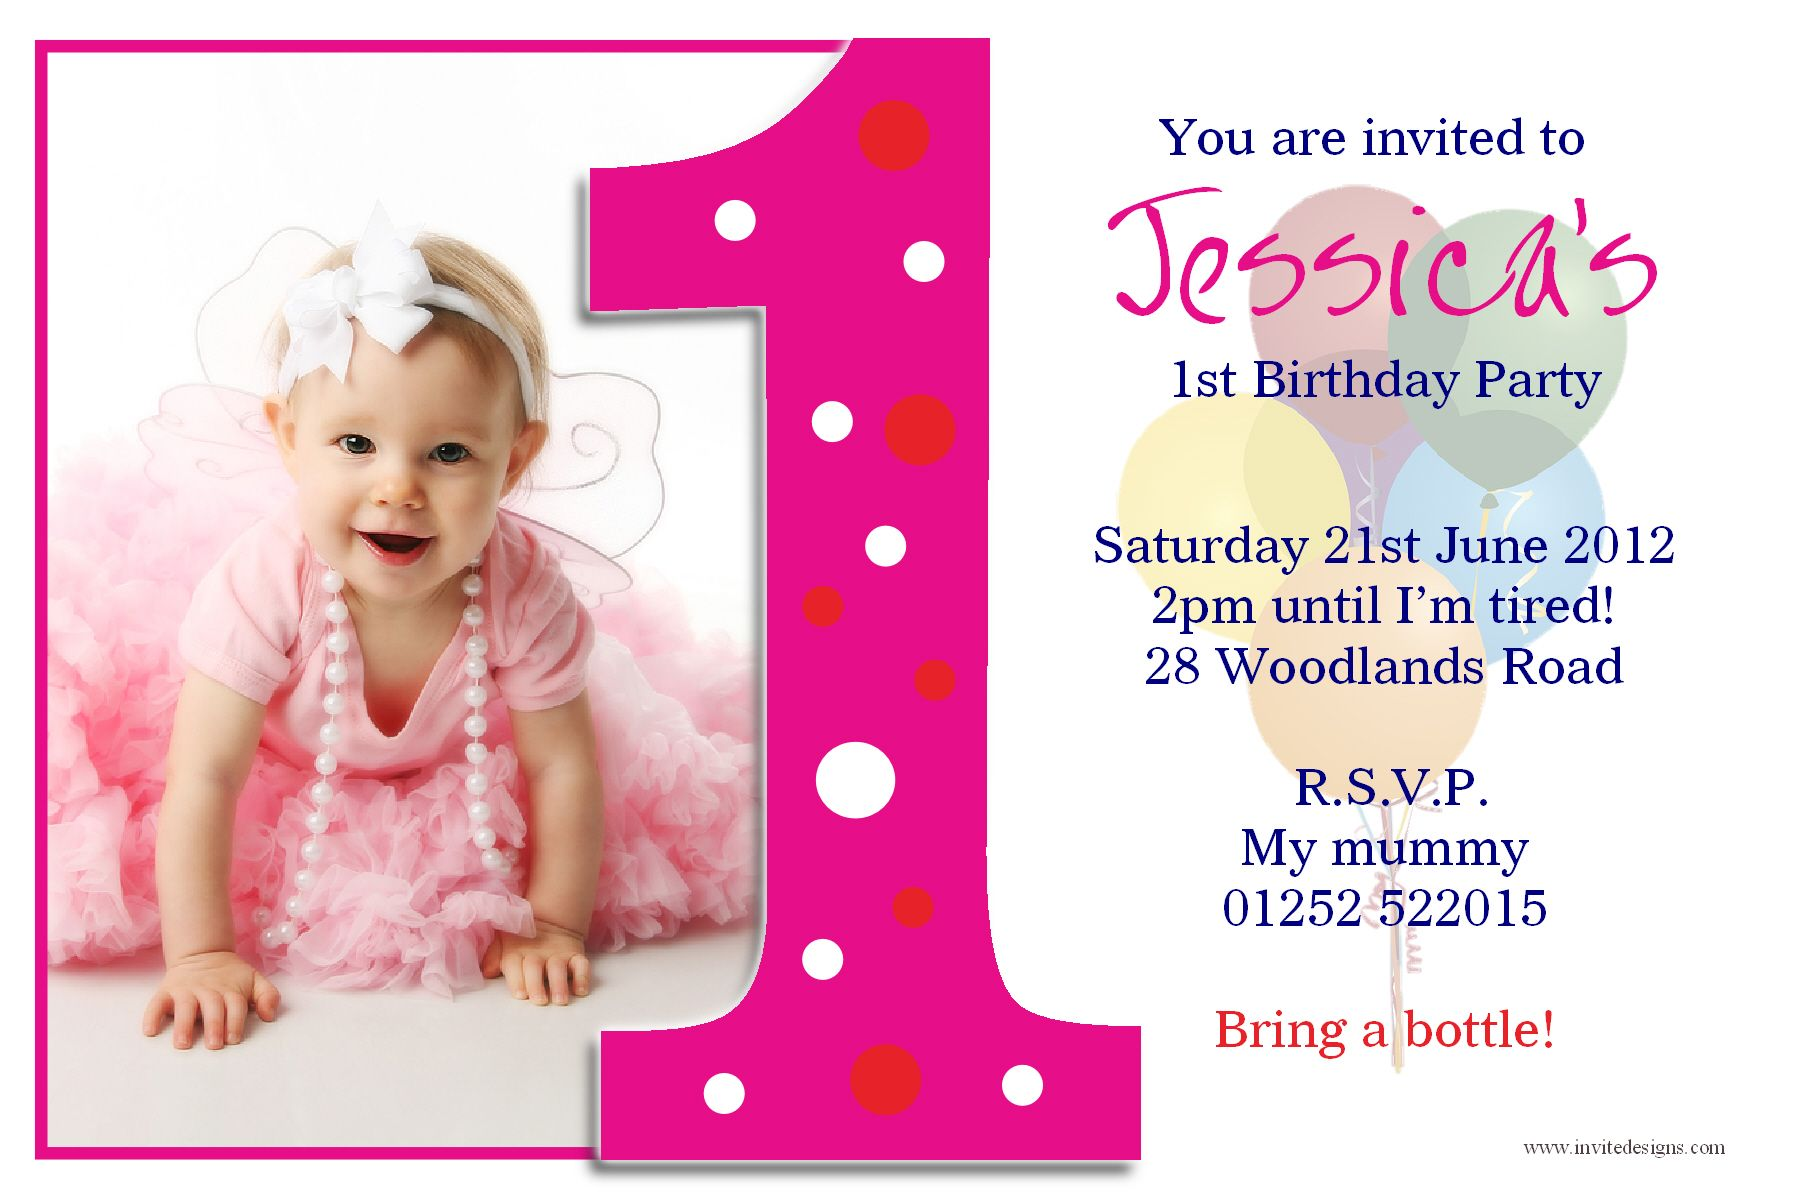 Details About Personalised Girls First 1st Birthday Party Photo